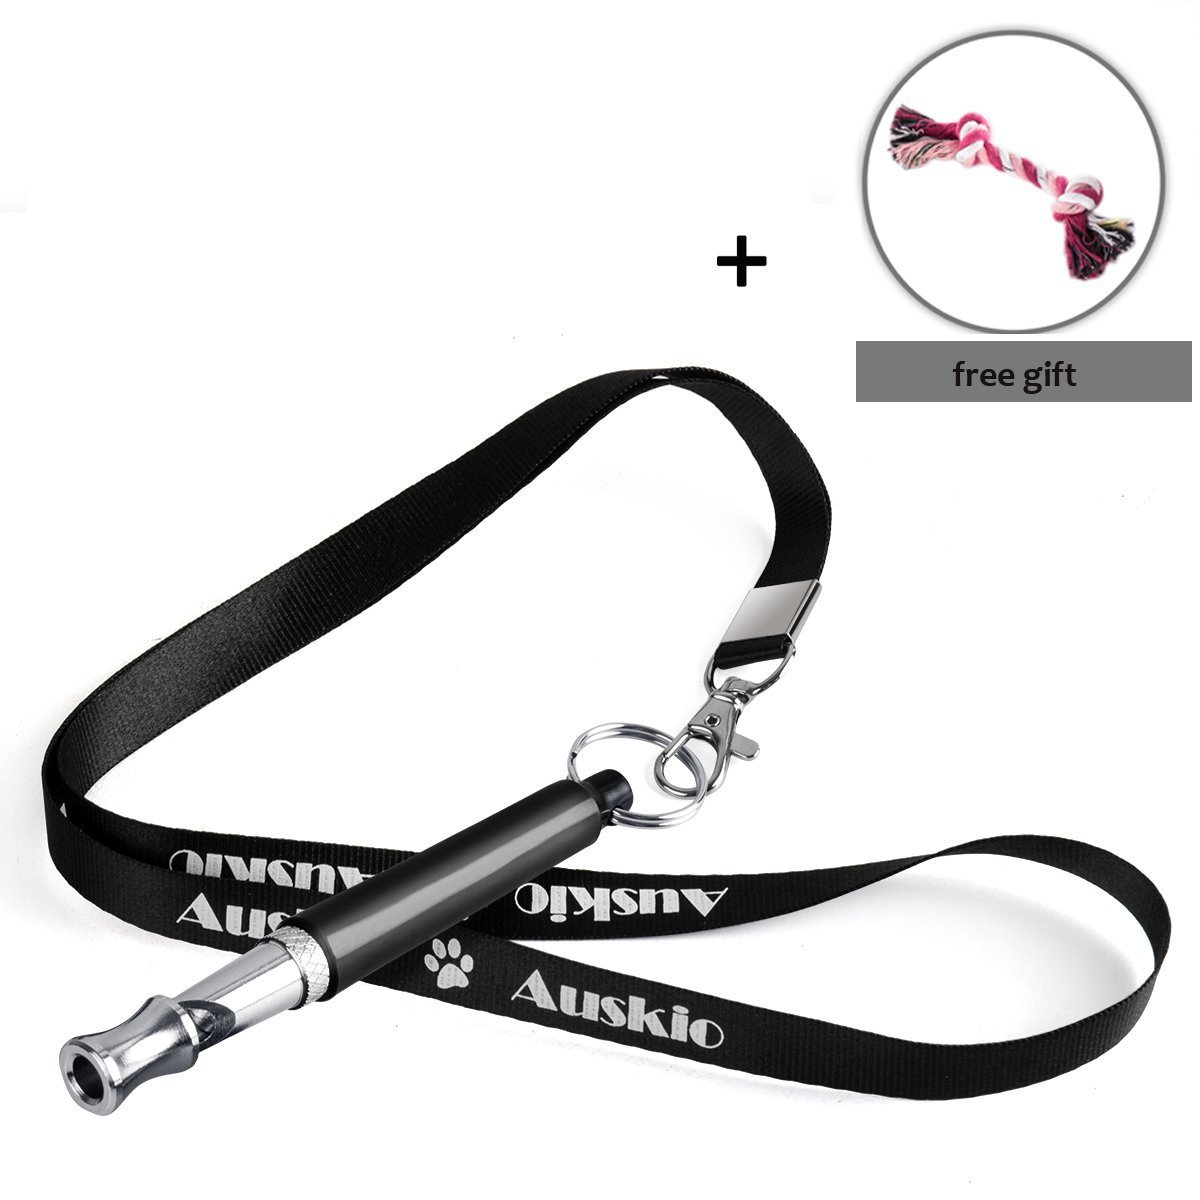 Auskio Ultrasonic Dog Whistle to Stop Barking - Adjustable High Frequency Training Silent Bark Control Aide for Dogs, Ultra-Sonic Sound Whistles with Lanyard Strap to Anti-Lost